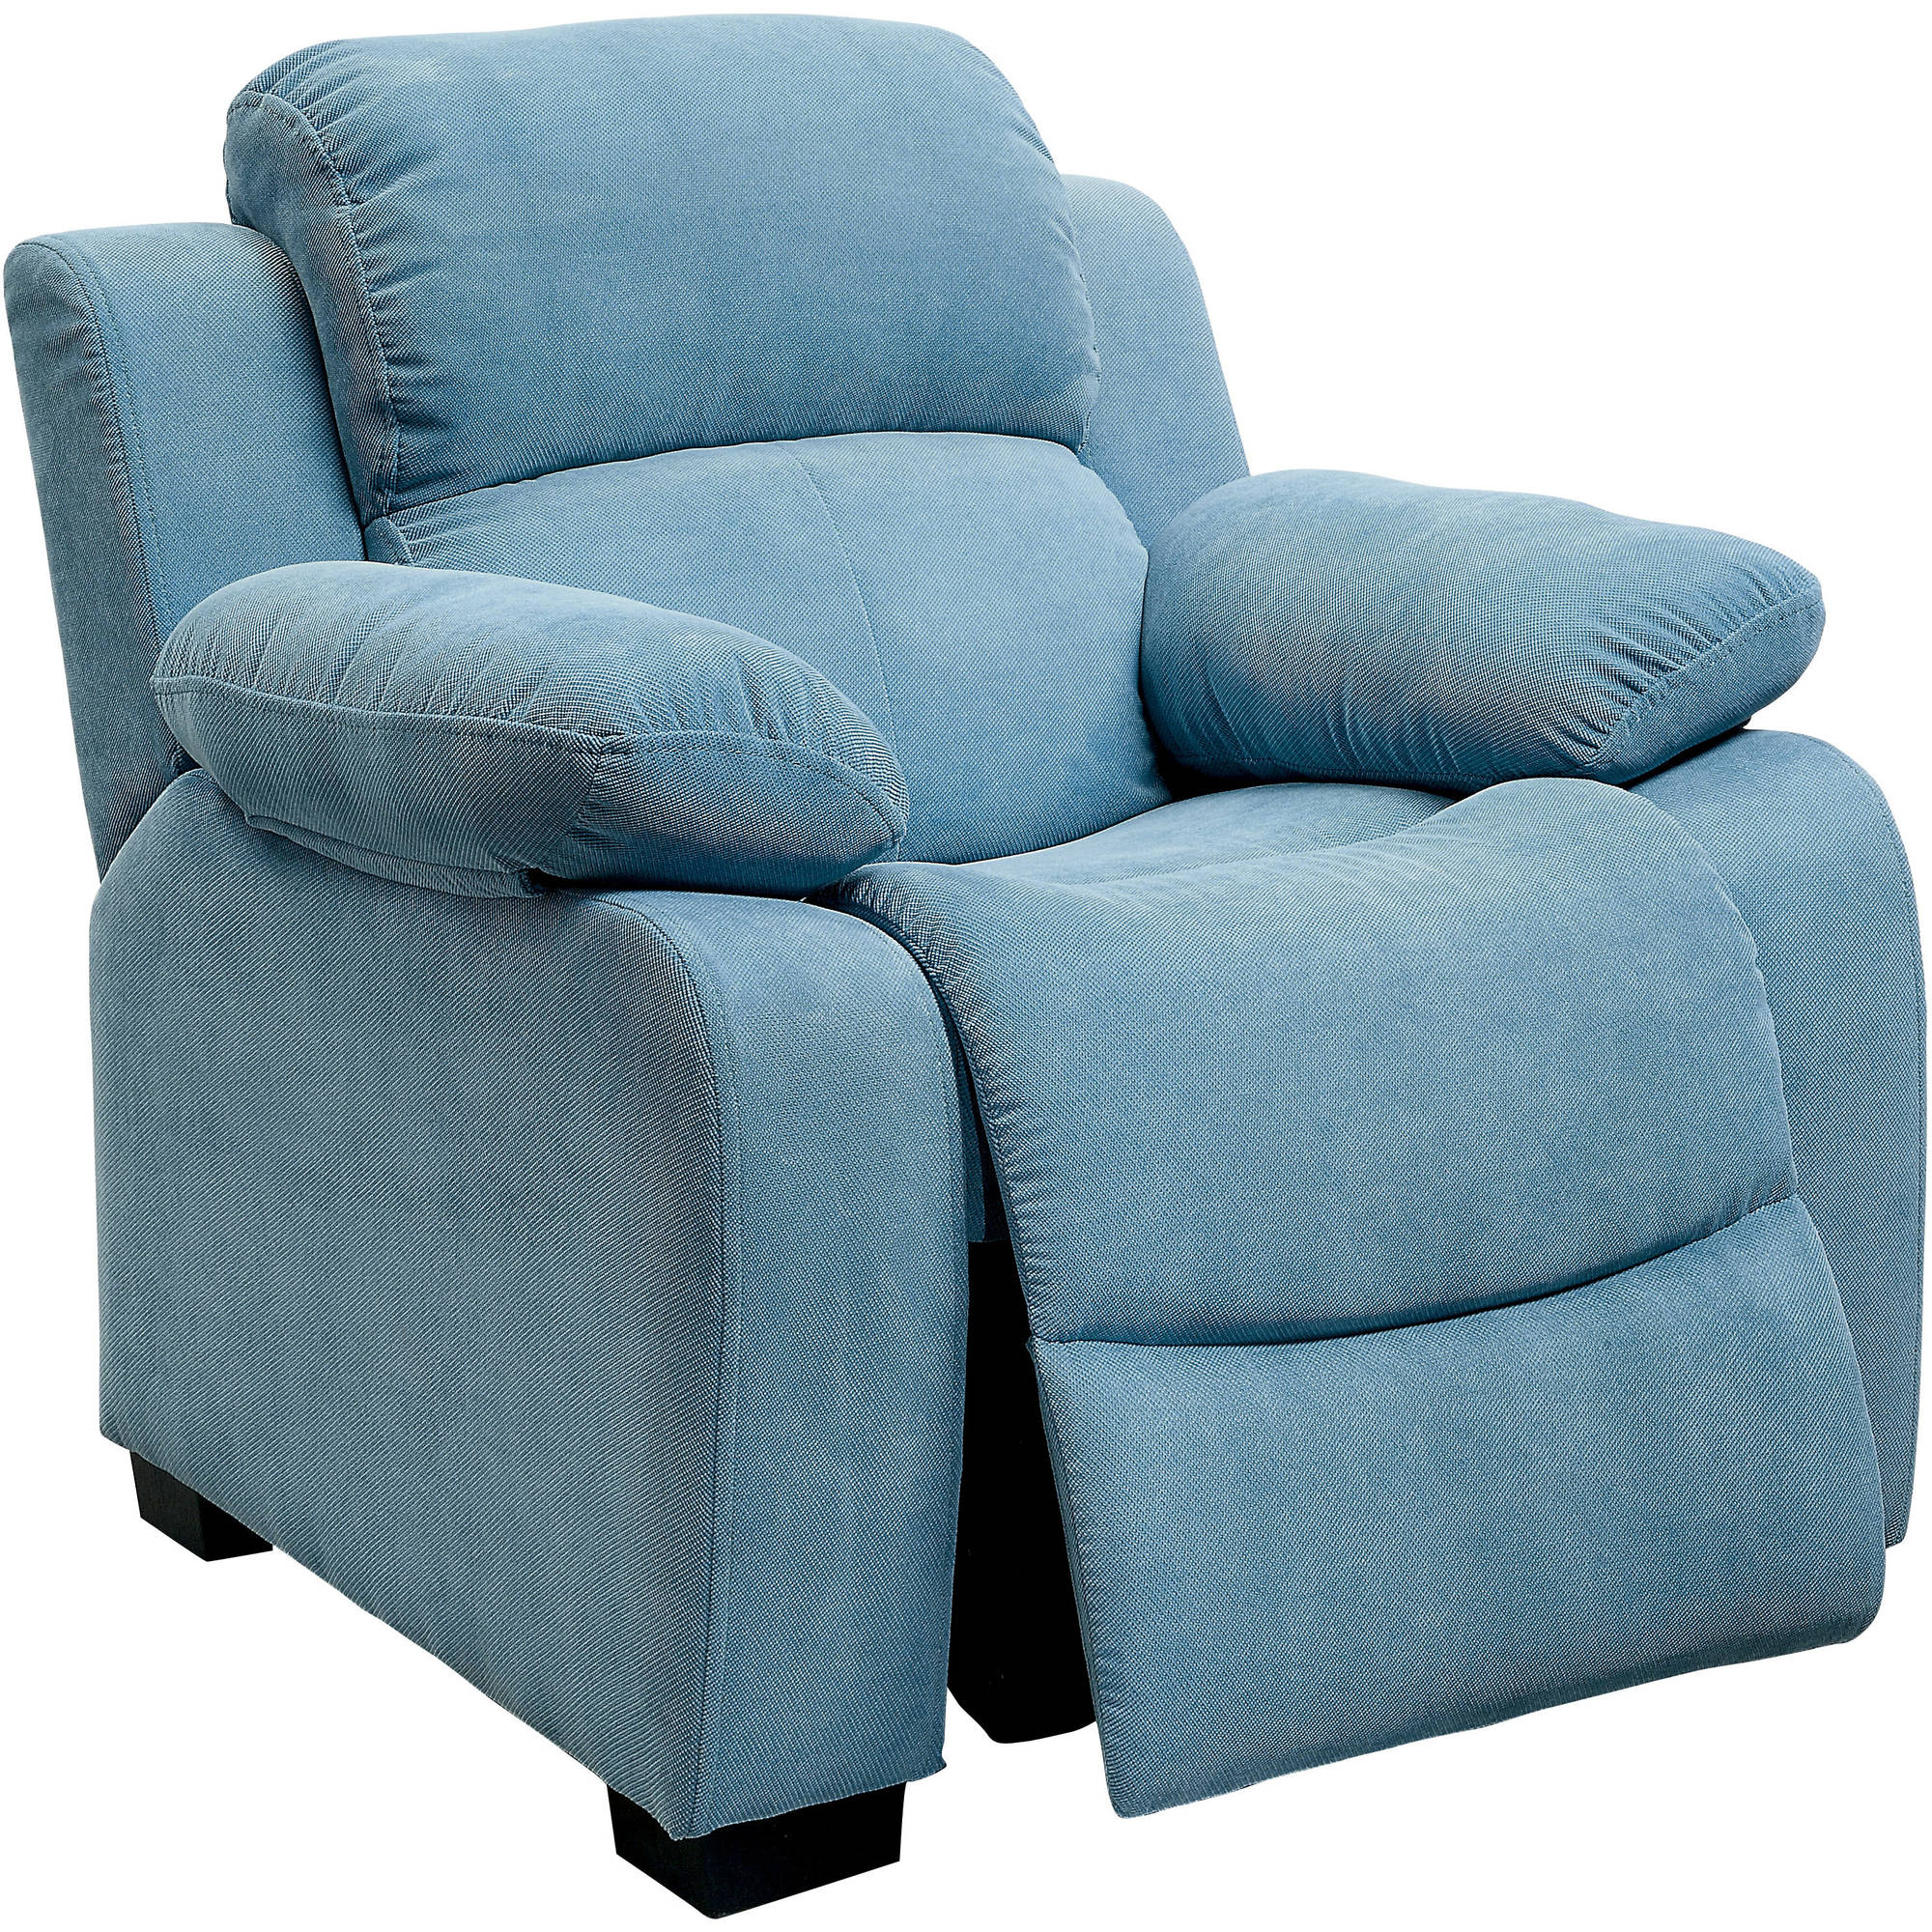 Furniture of America Luba Kids Fabric Recliner, Multiple Colors